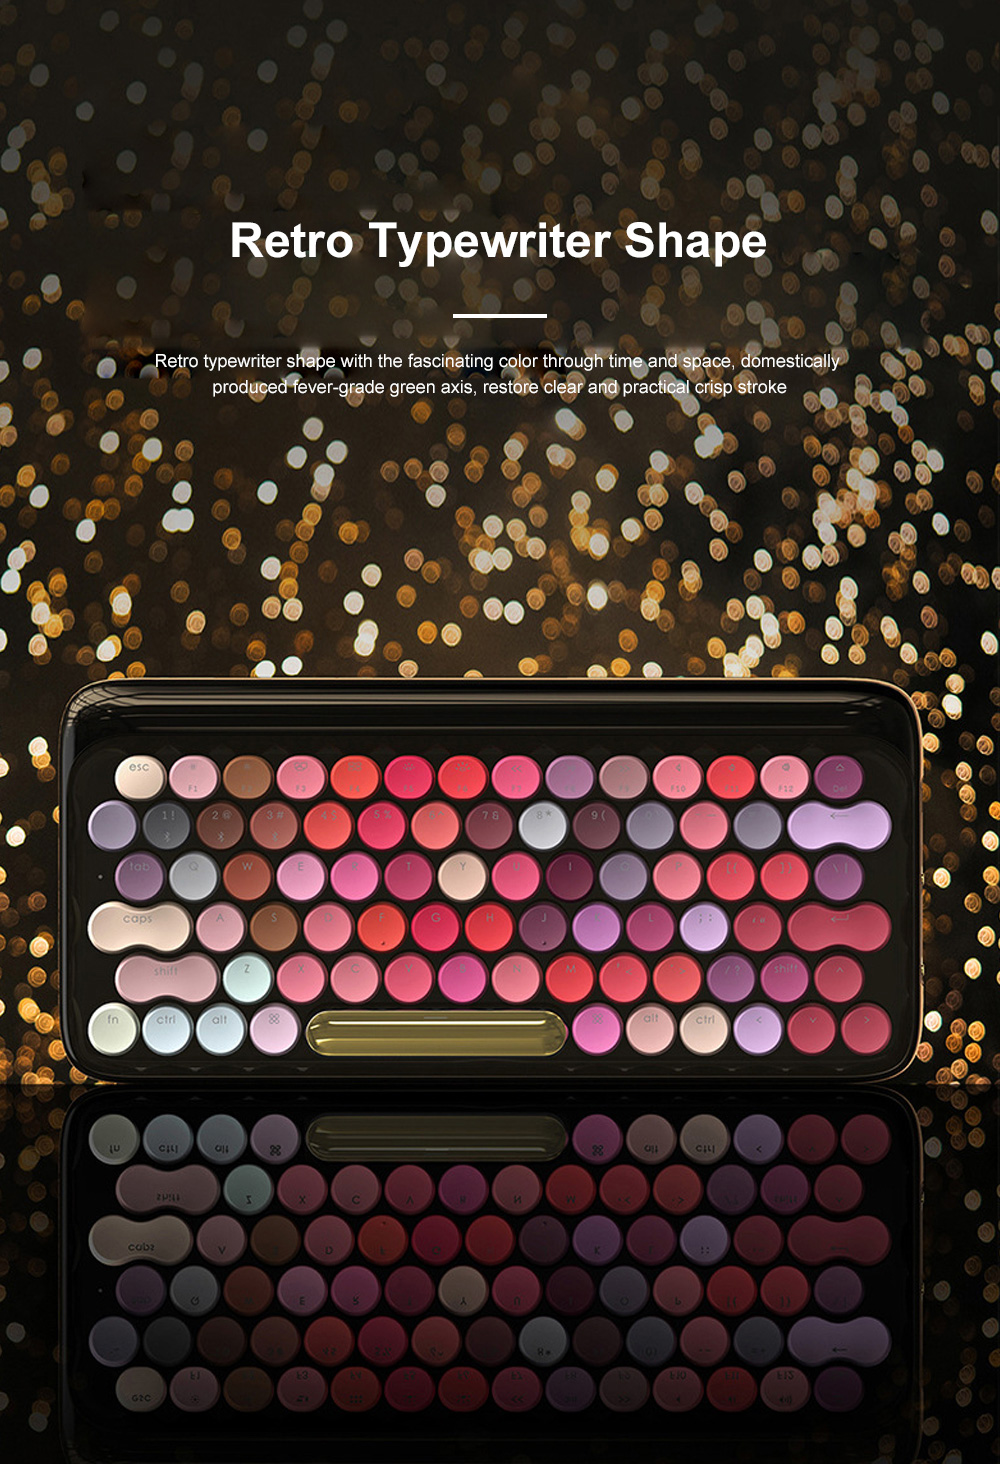 LOFREE Fashion Design Lipstick Colorful Dot Wireless Keyboard Cute Wireless Bluetooth Mechanical Keyboard 3